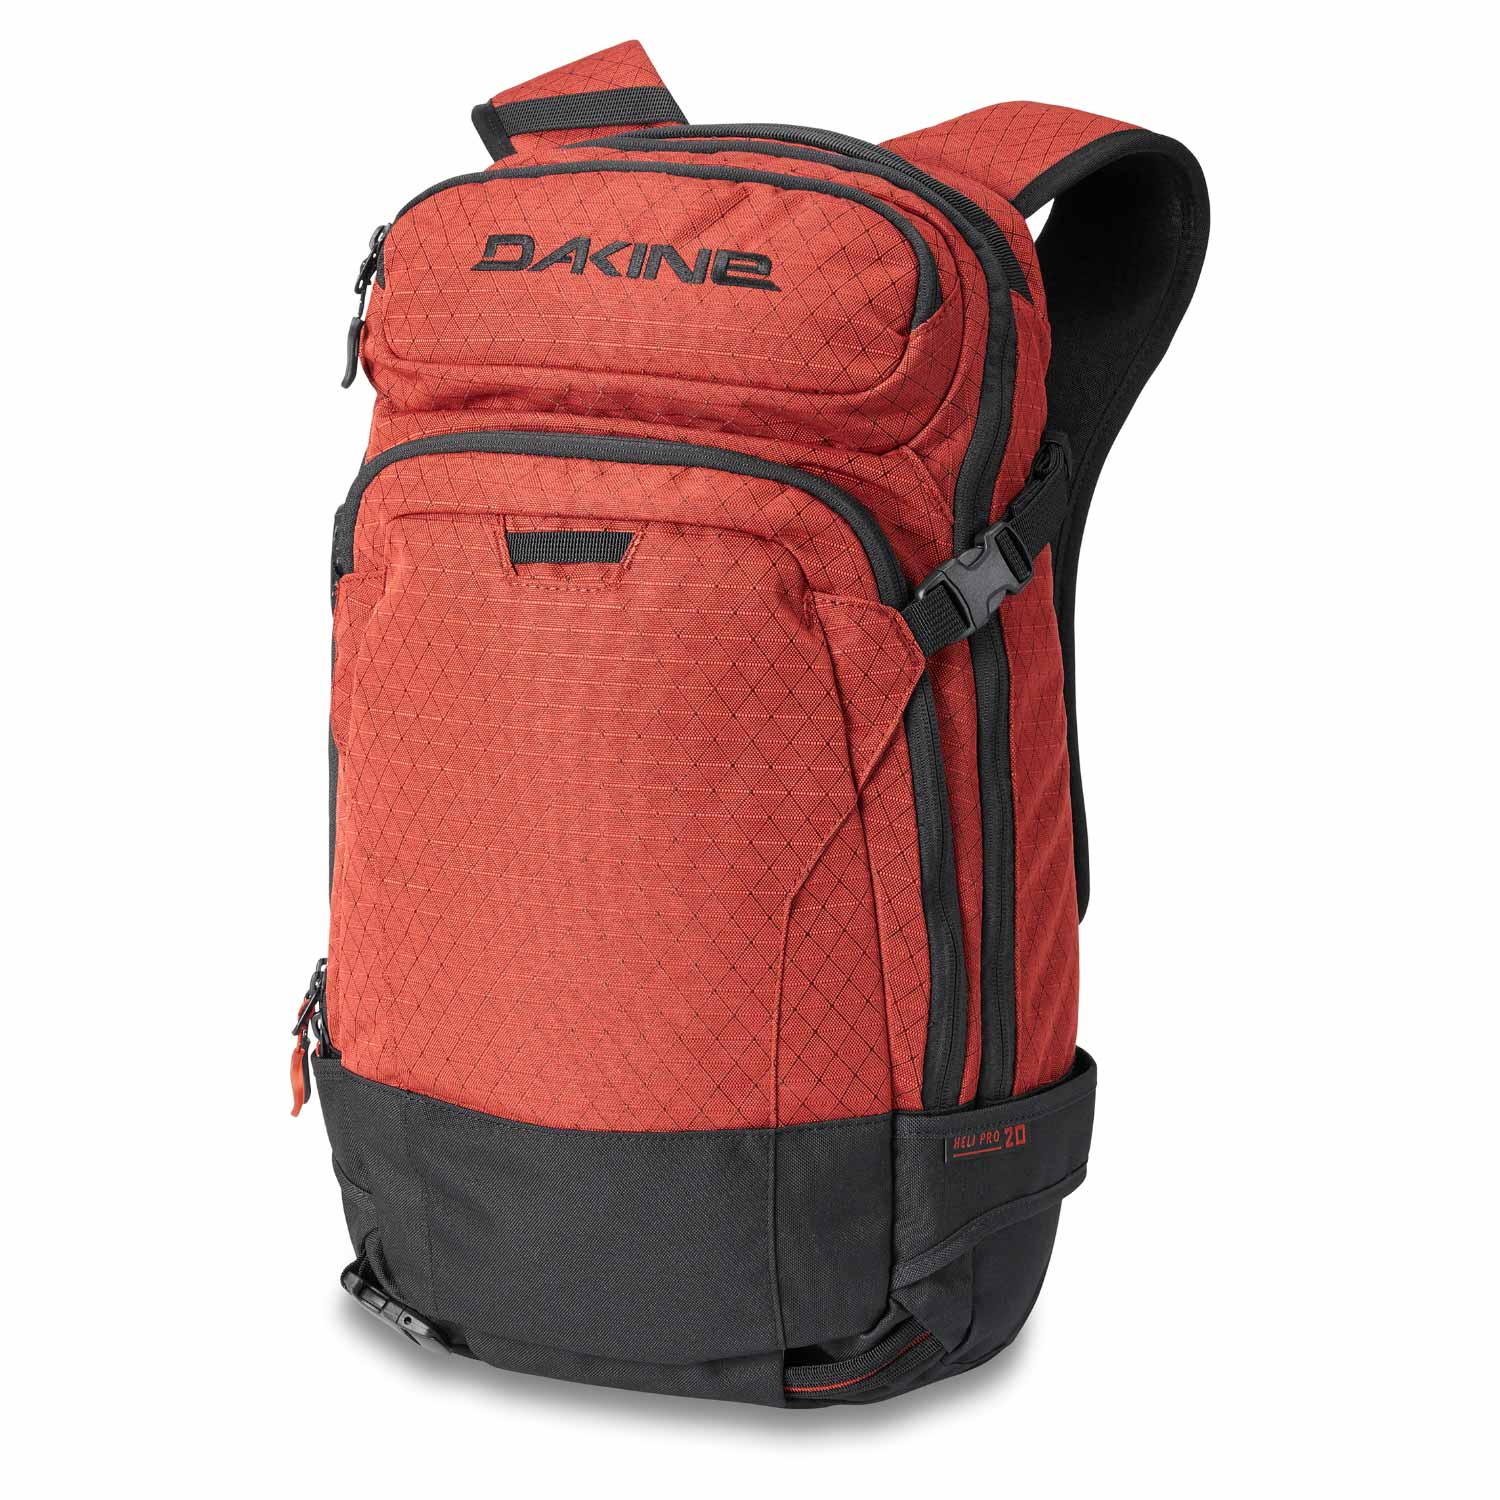 shop best sellers 100% satisfaction guarantee new style Dakine Heli Pro 20L Pack Tandoori Spice 2020